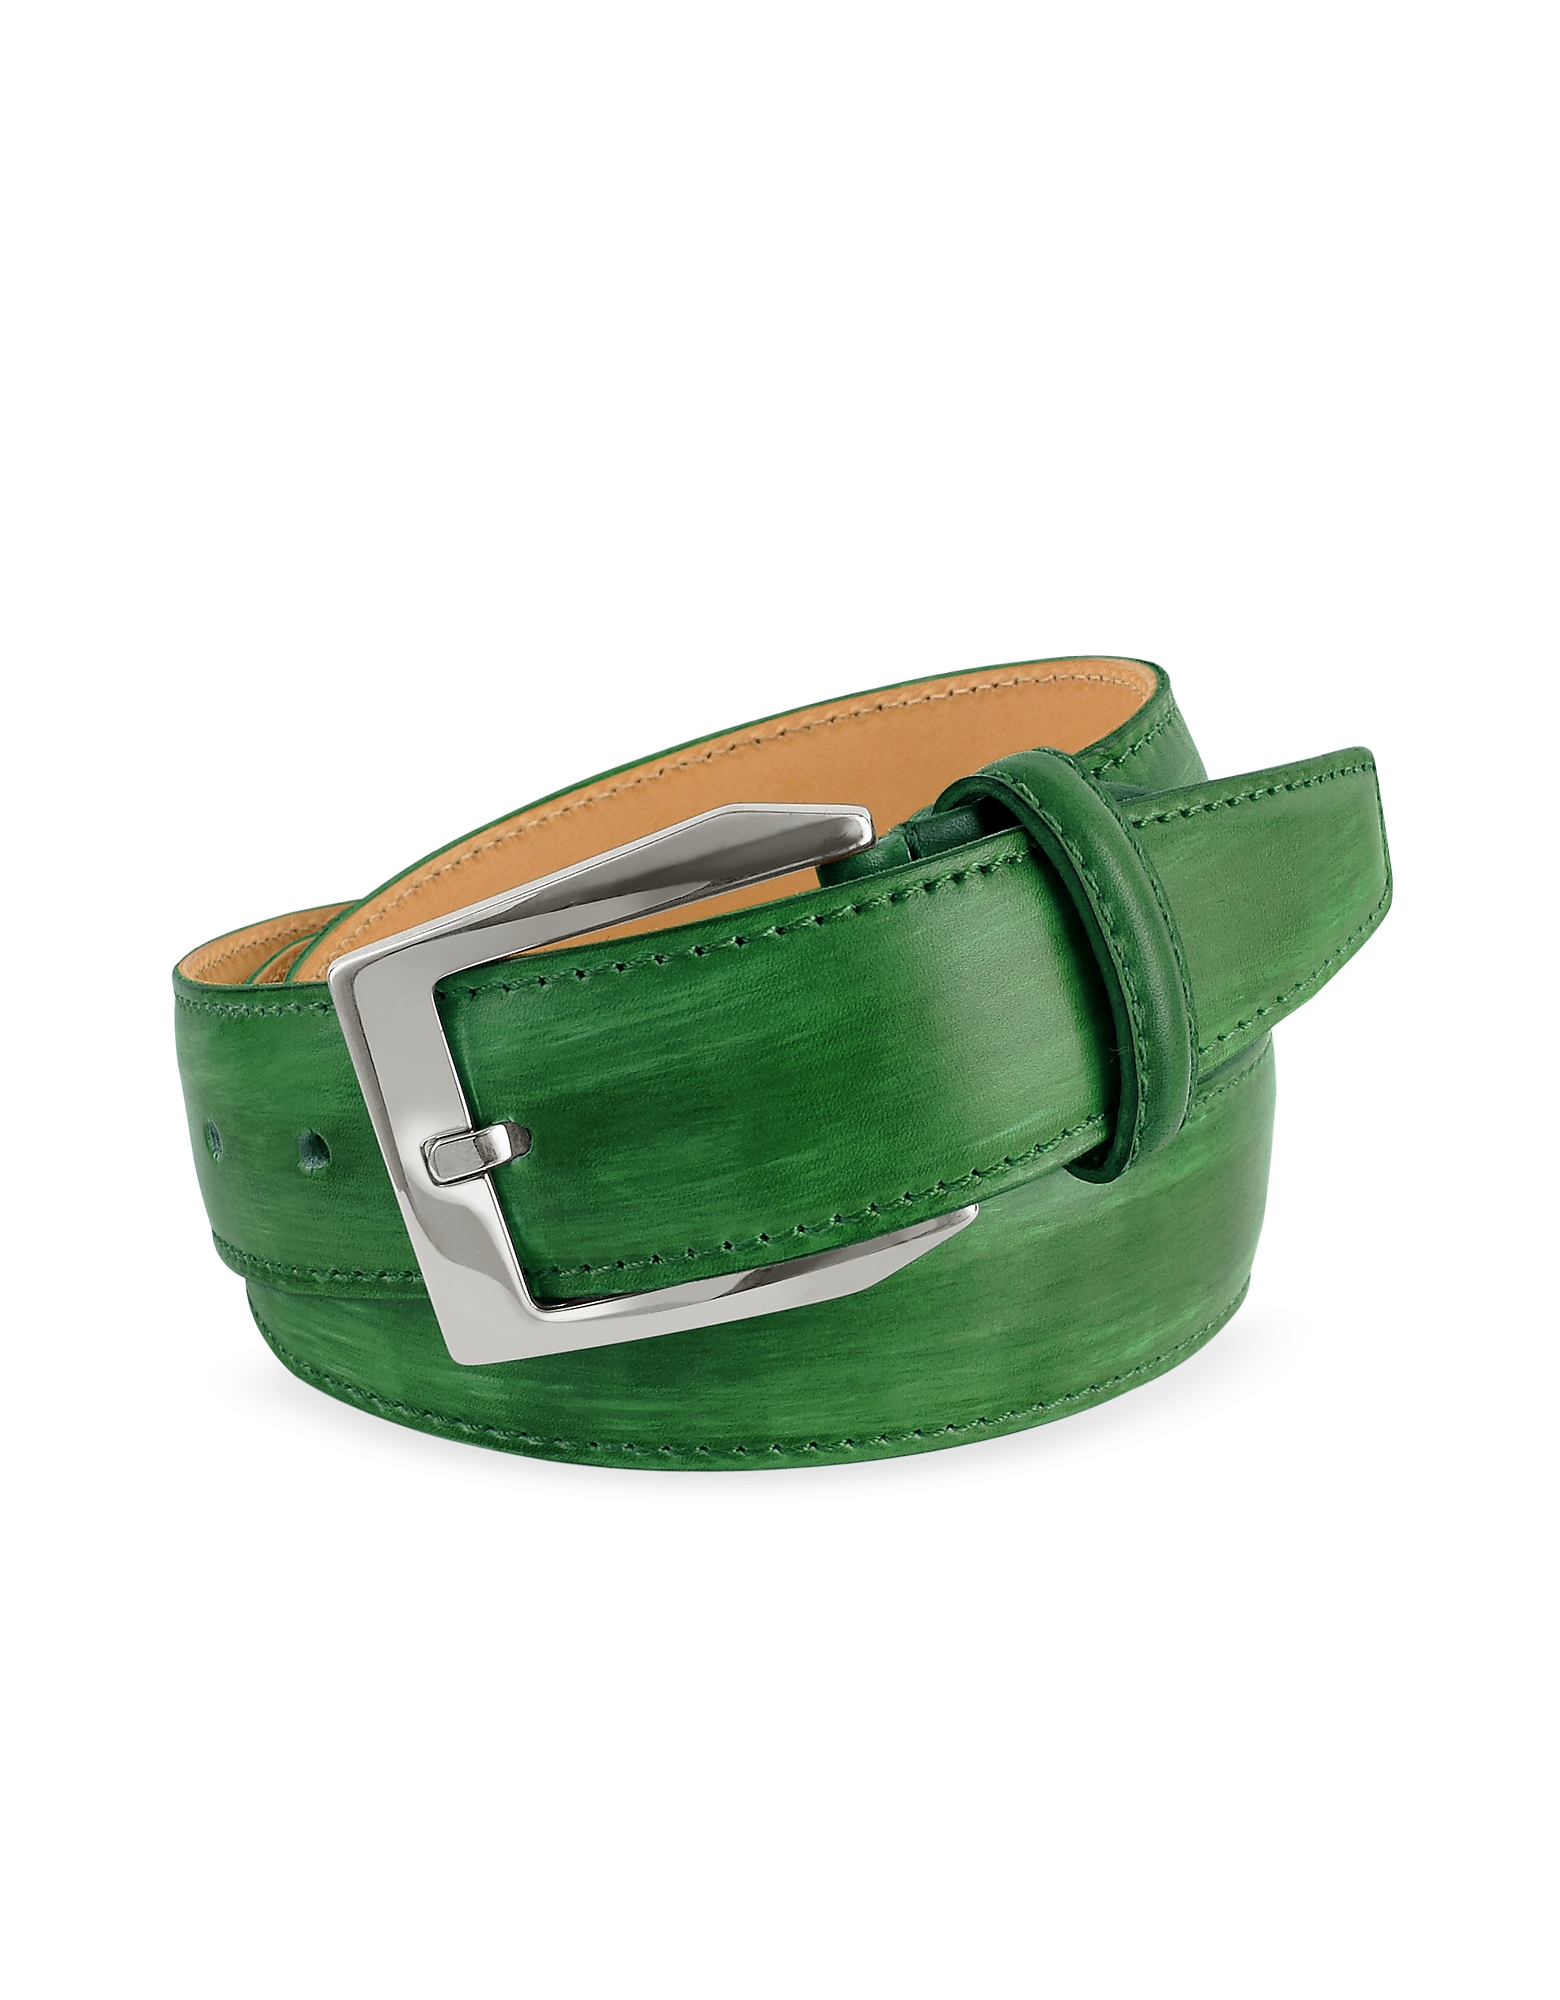 Pakerson Men's Belts, Men's Green Hand Painted Italian Leather Belt